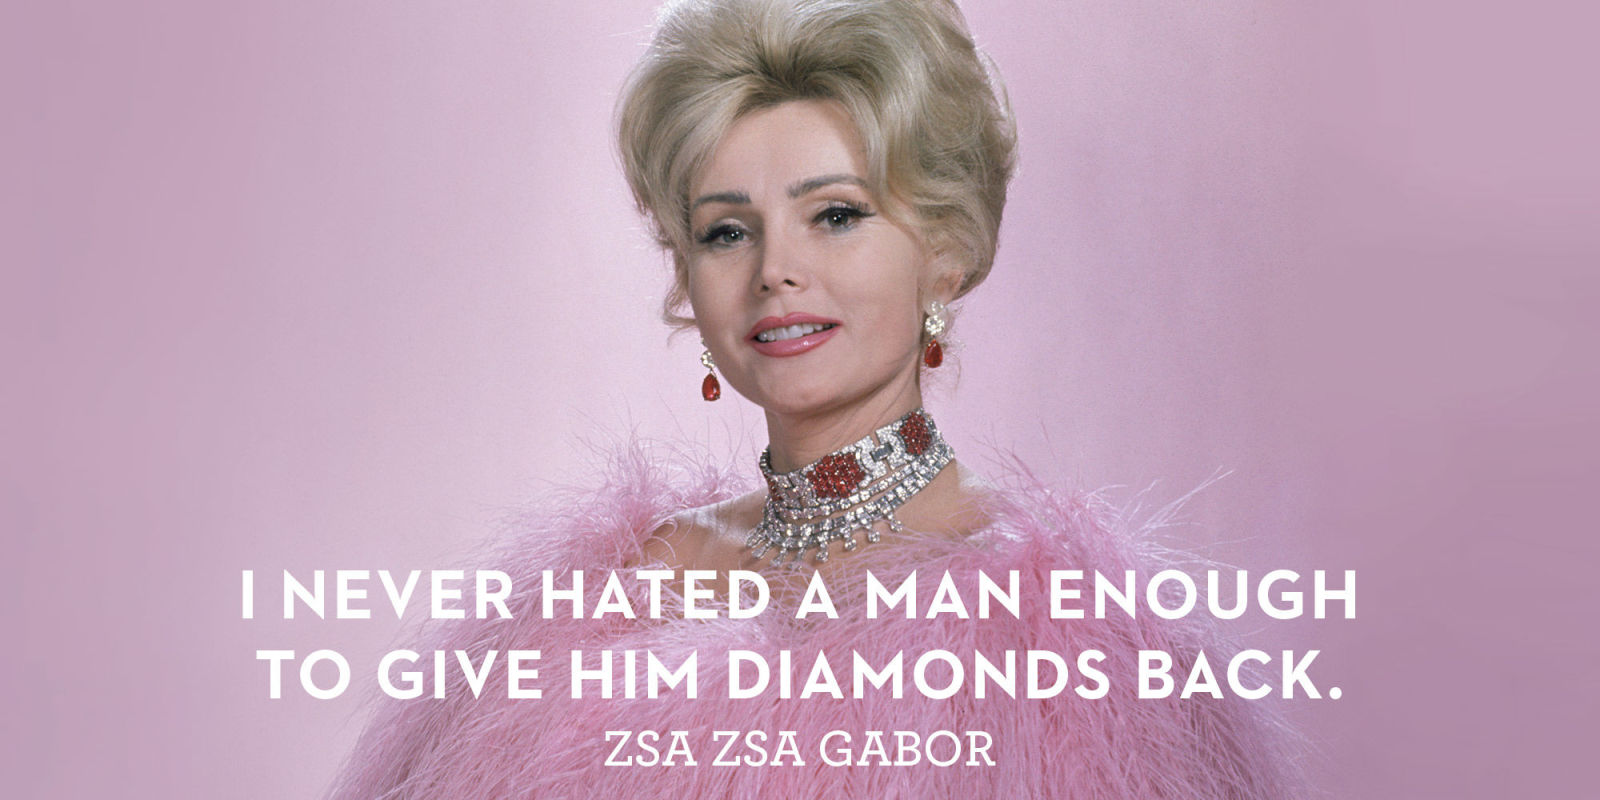 Zsa Zsa Gabor Quotes Zsa Zsa Gabor Through The Years  Zsa Zsa Gabor Quotes